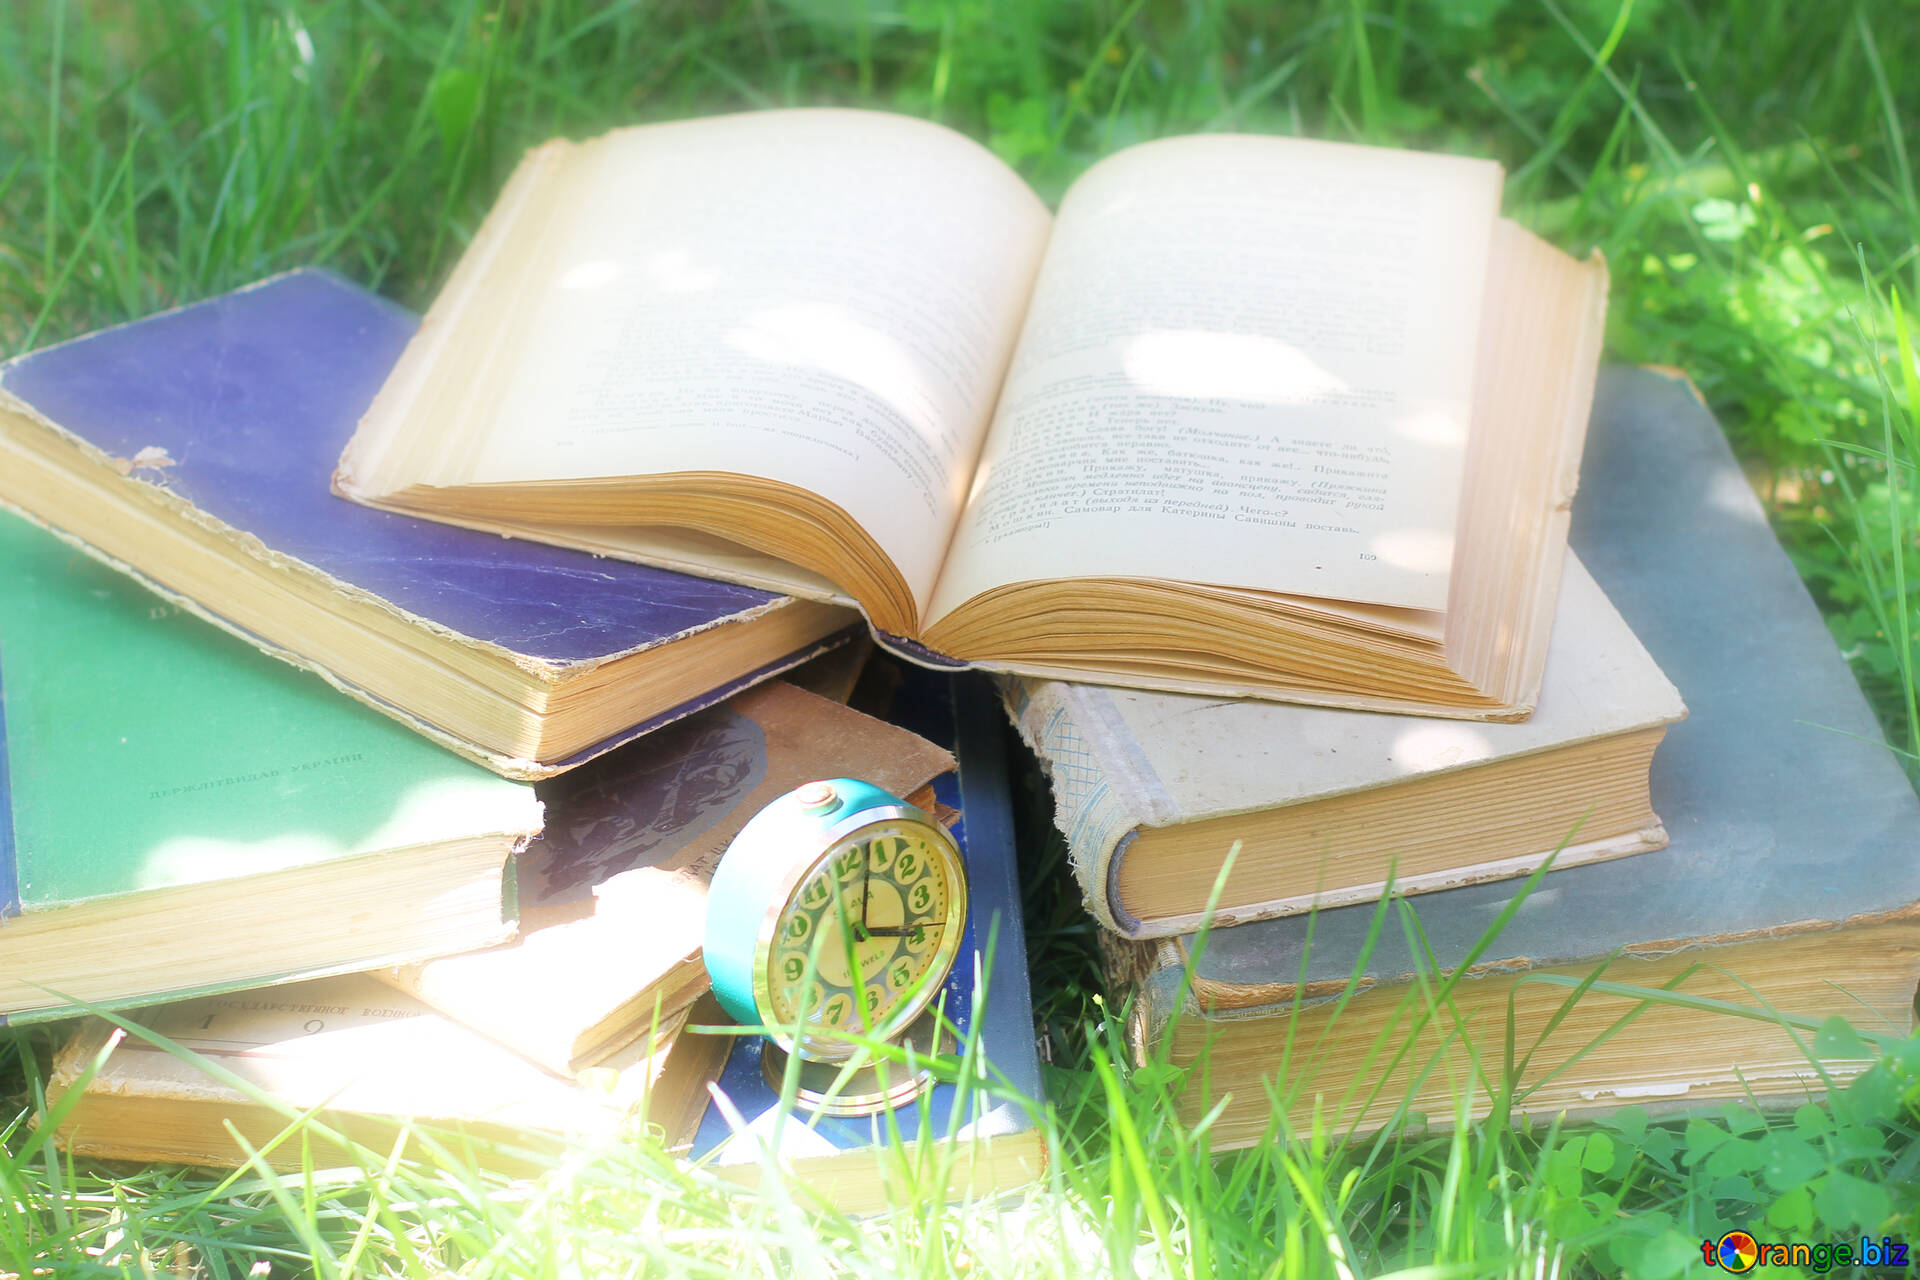 Books On The Grass The Book Of Life Watch 34868